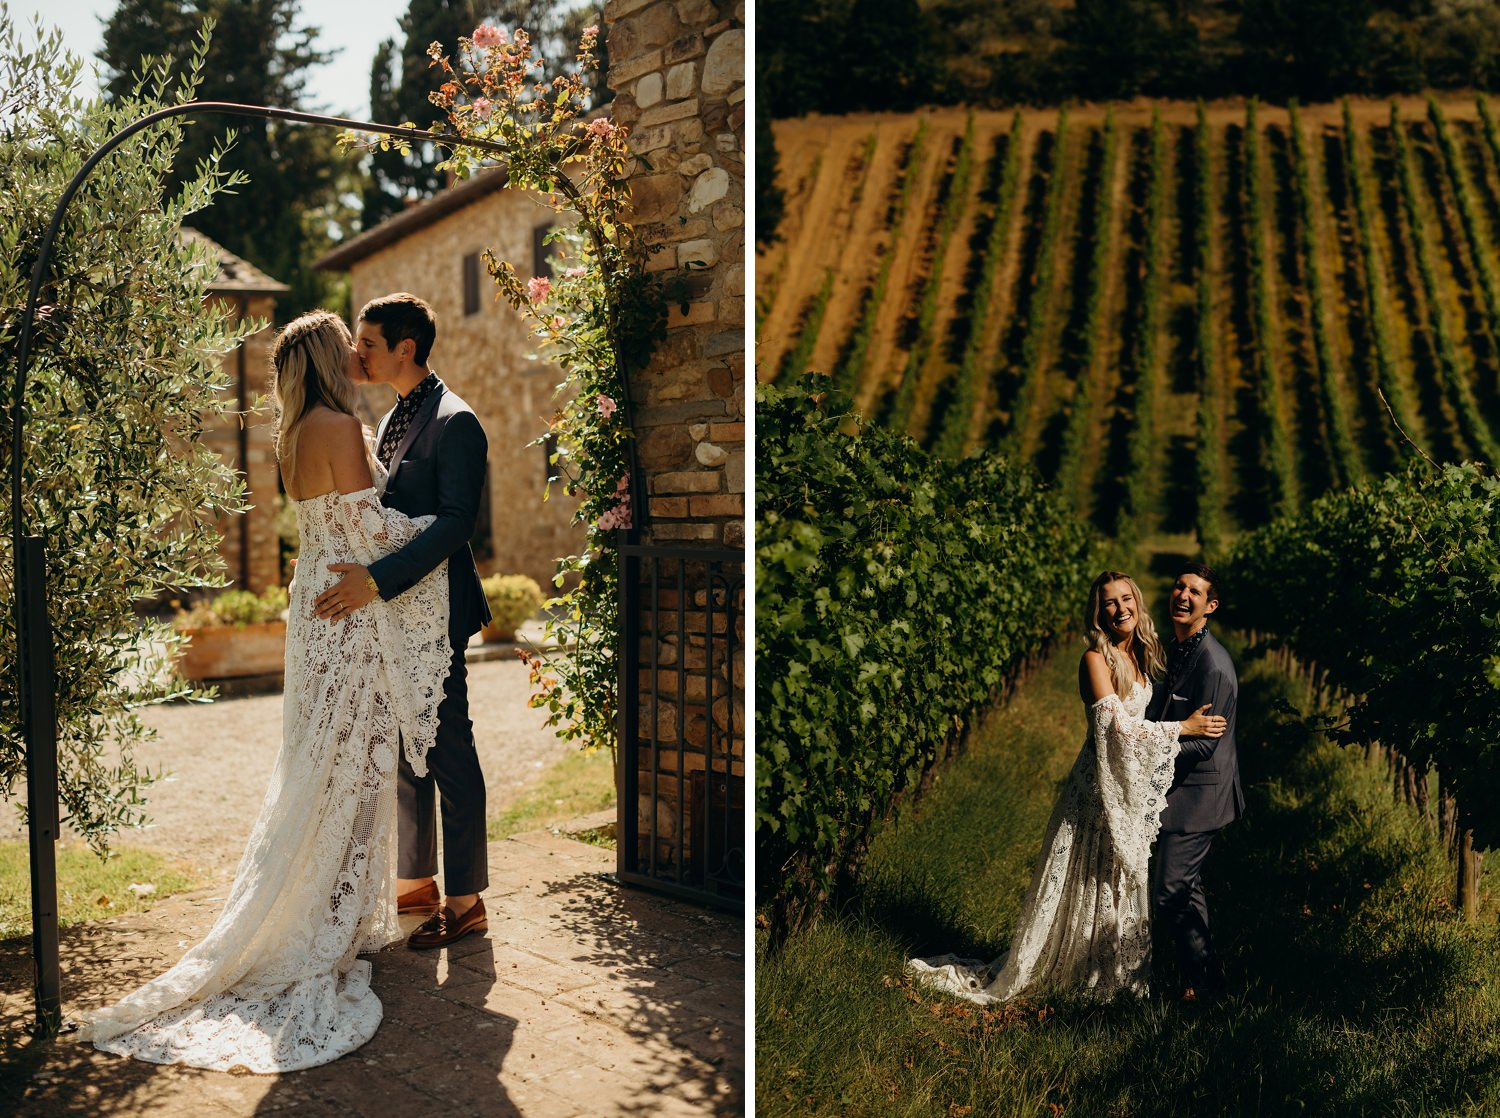 Bride and groom down vineyard grapevines